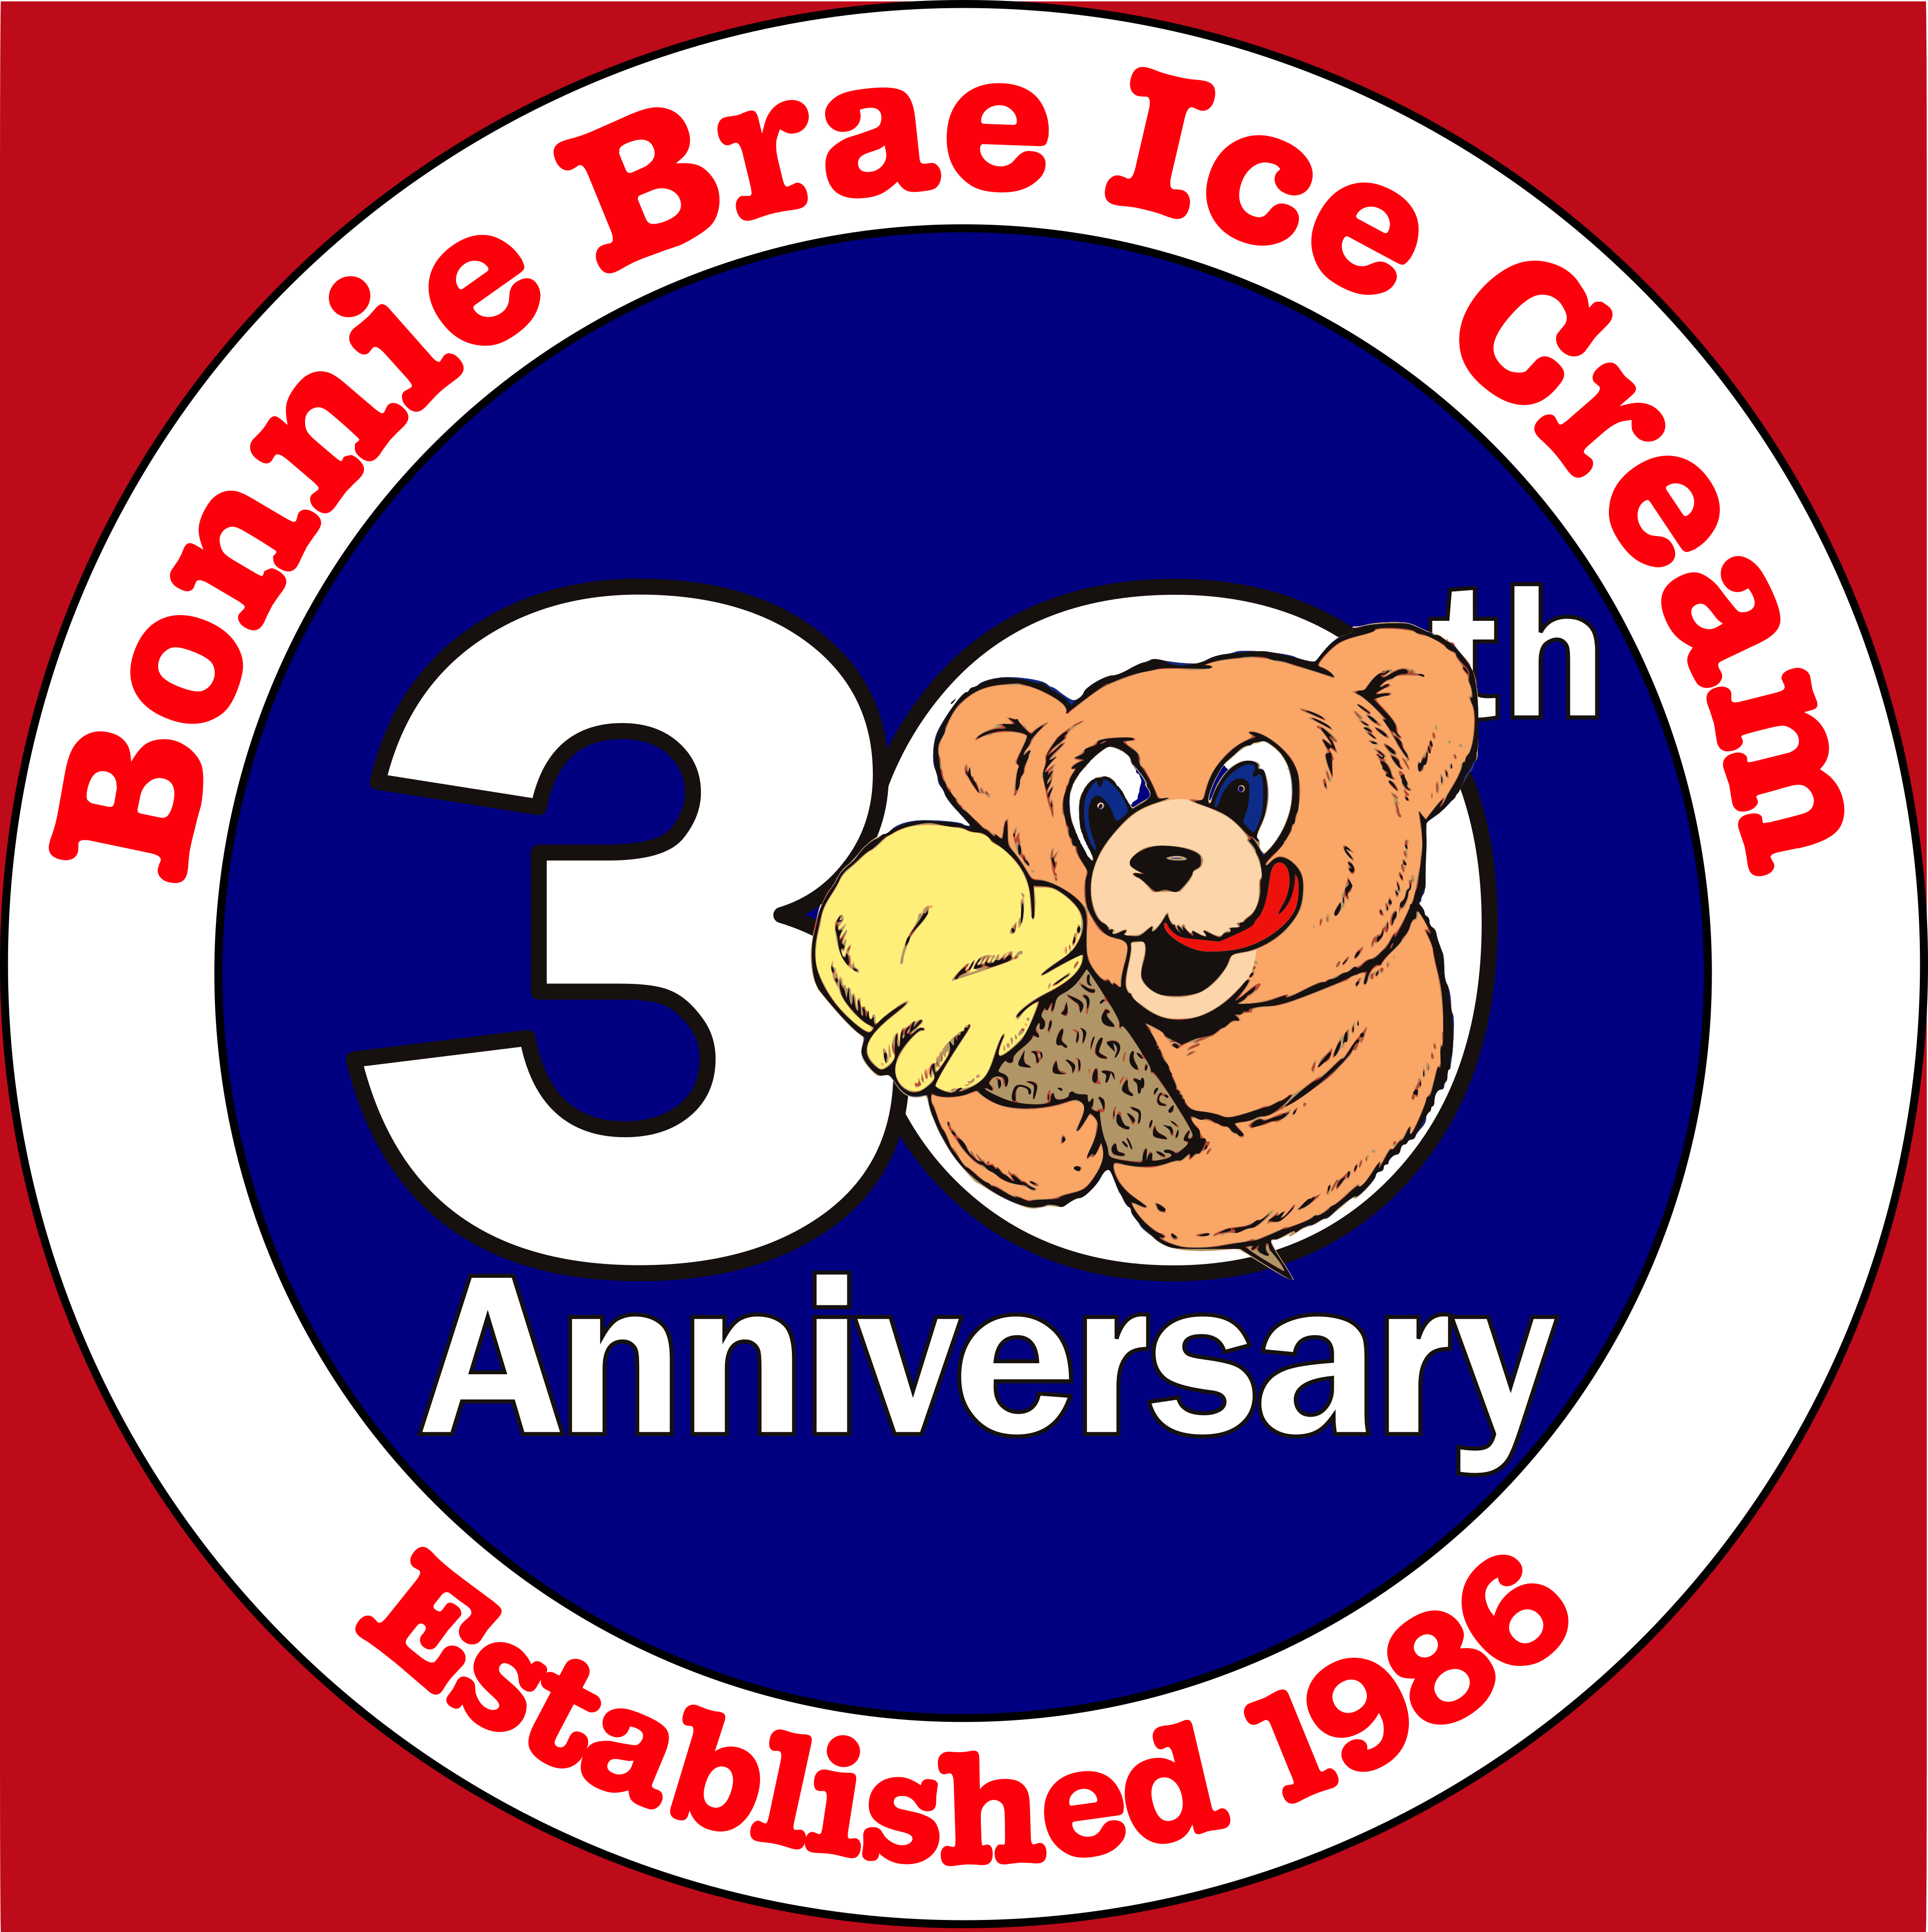 Bonnie Brae Ice Cream Shop, Denver's favorite ice cream treats, the best Ice Cream in the Colorado Rockies, best Ice Cream in Denver Colorado Bonnie Brae Ice Cream Shop, Denver's favorite ice cream treats, the best Ice Cream in the Colorado Rockies